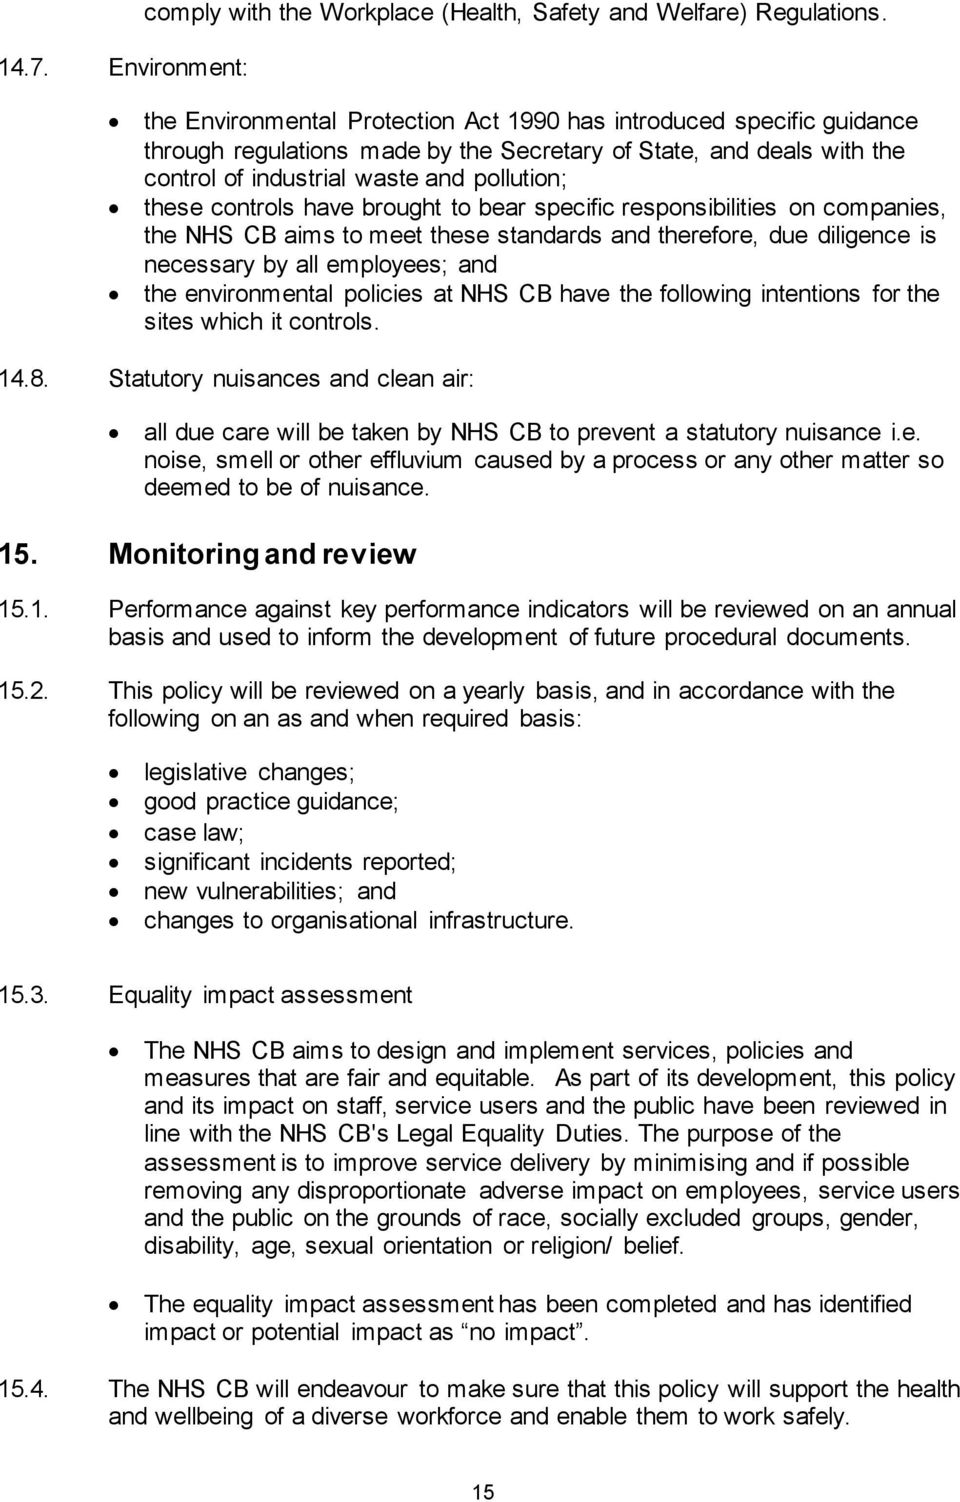 have brought to bear specific responsibilities on companies, the NHS CB aims to meet these standards and therefore, due diligence is necessary by all employees; and the environmental policies at NHS